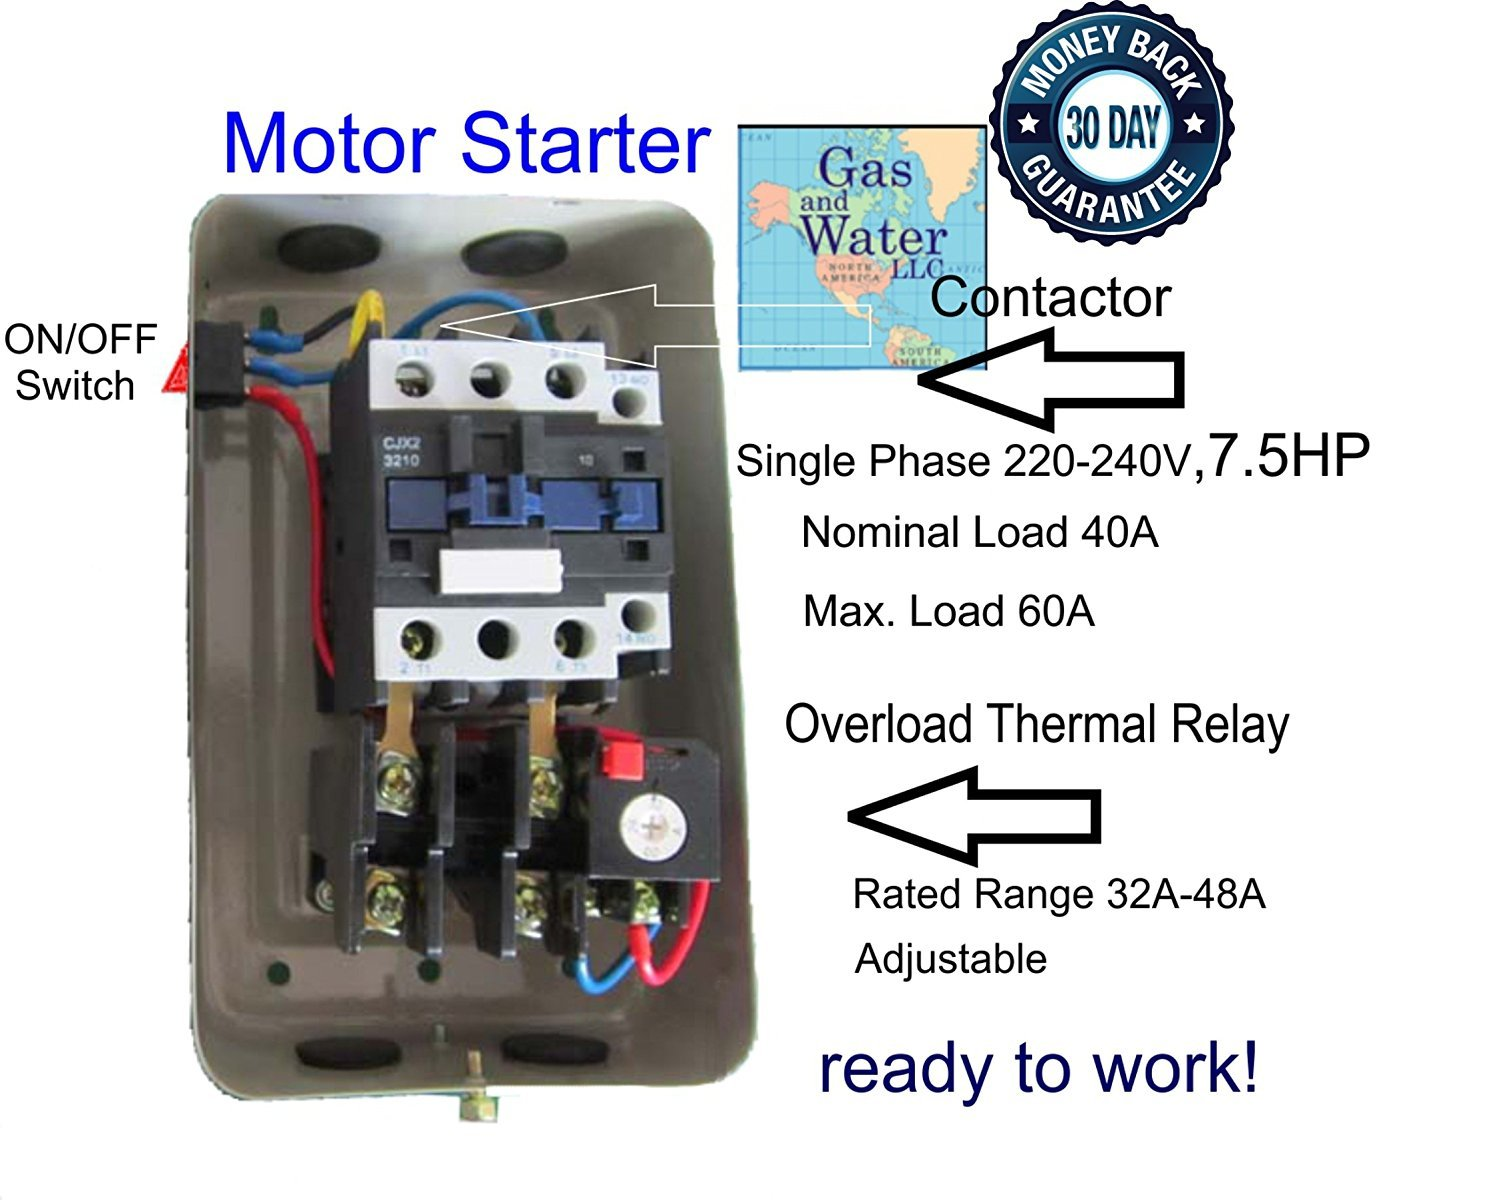 Magnetic Electric Motor Starter 7.5 HP Single Phase Control 220/240V 30-40A  - Electrical Switches - Amazon.com